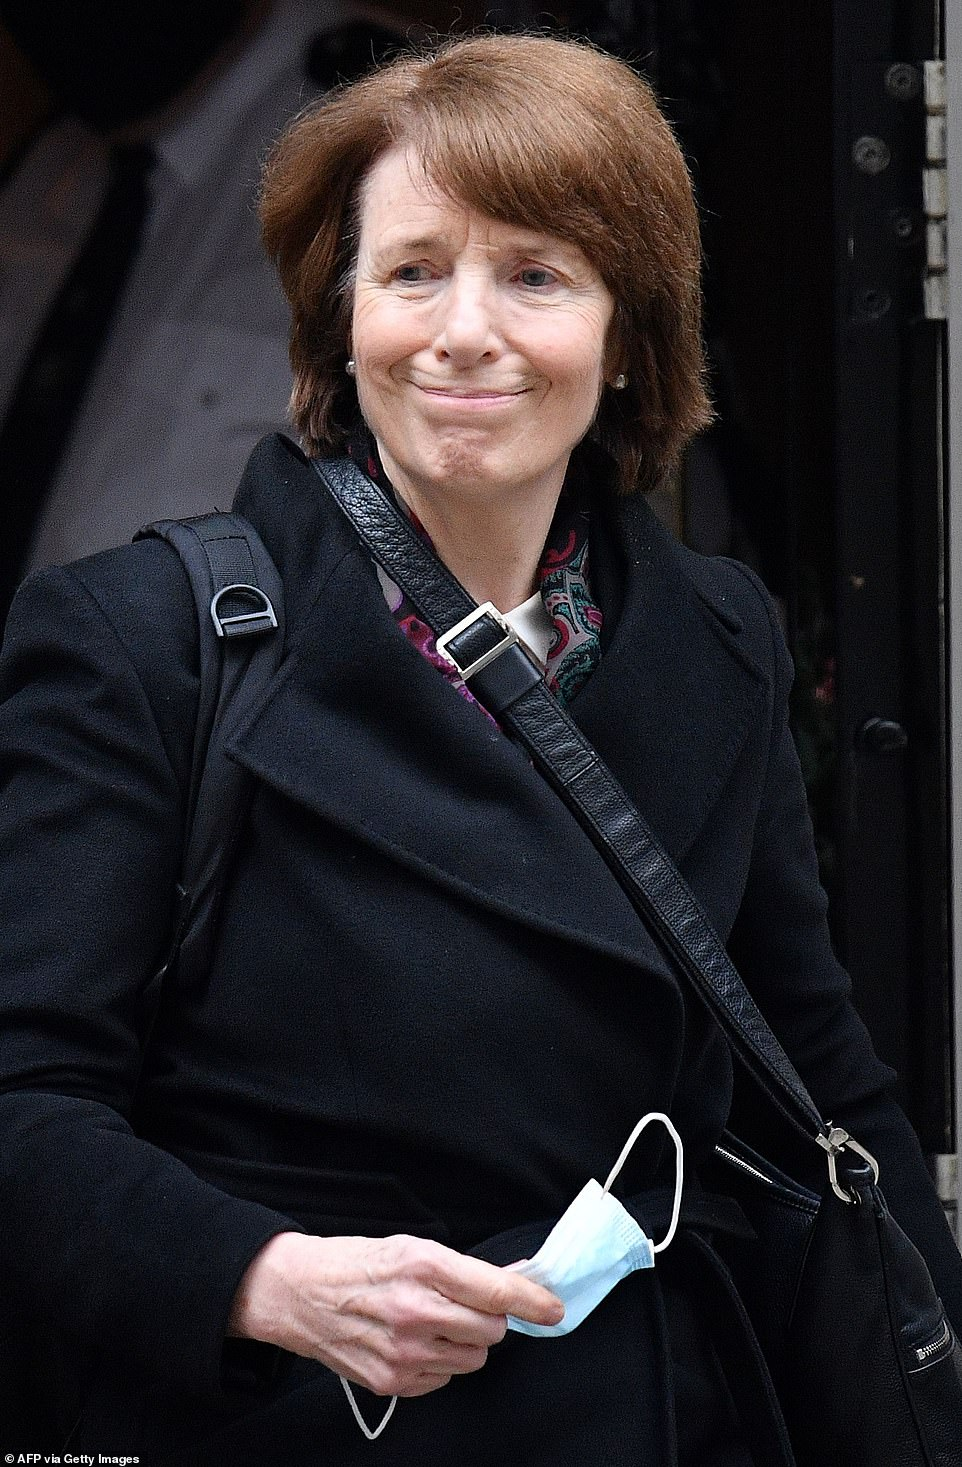 The MHRA's decision went through a series of panels before being approved by Dr June Raine, a career government scientist who has worked in drug licensing since 1985